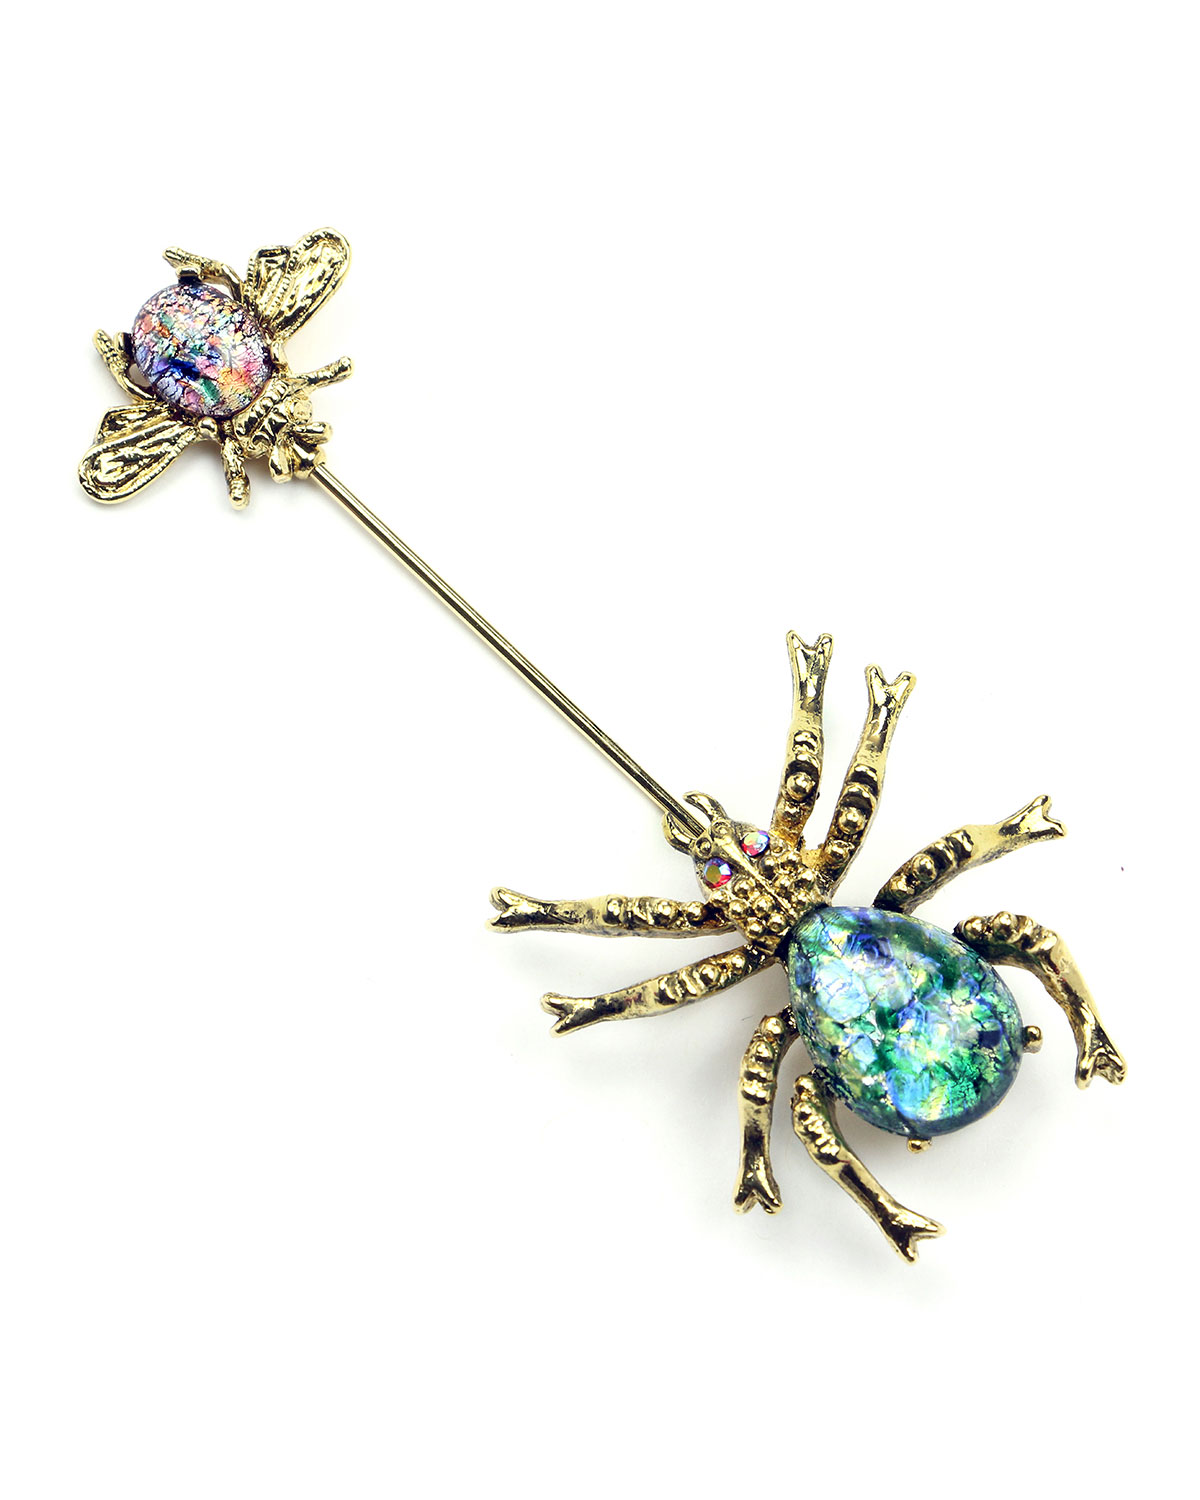 Crystal Spider & Insect Pin